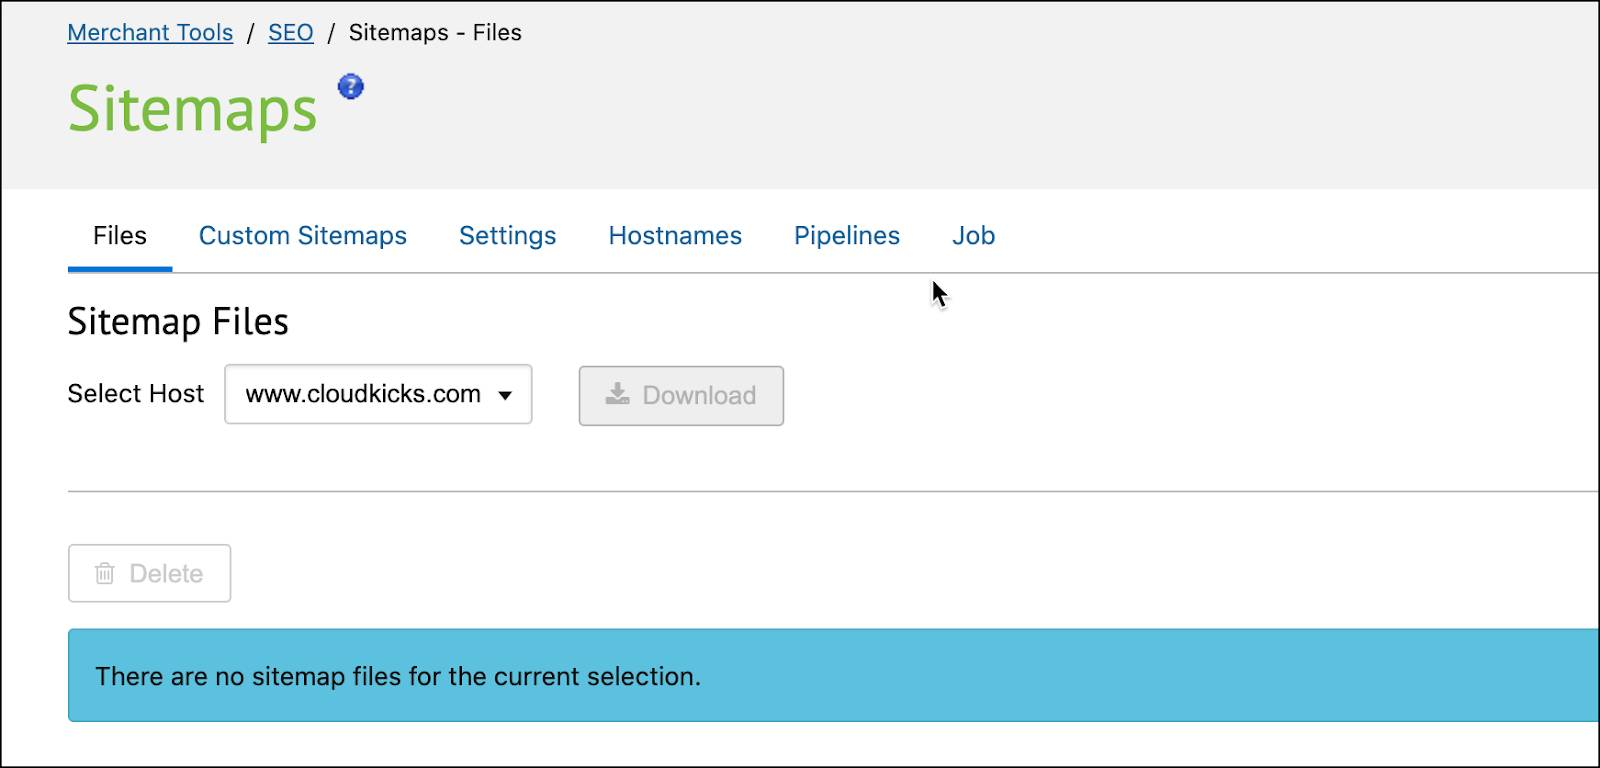 In Business Manager, select a hostname for SEO sitemaps.